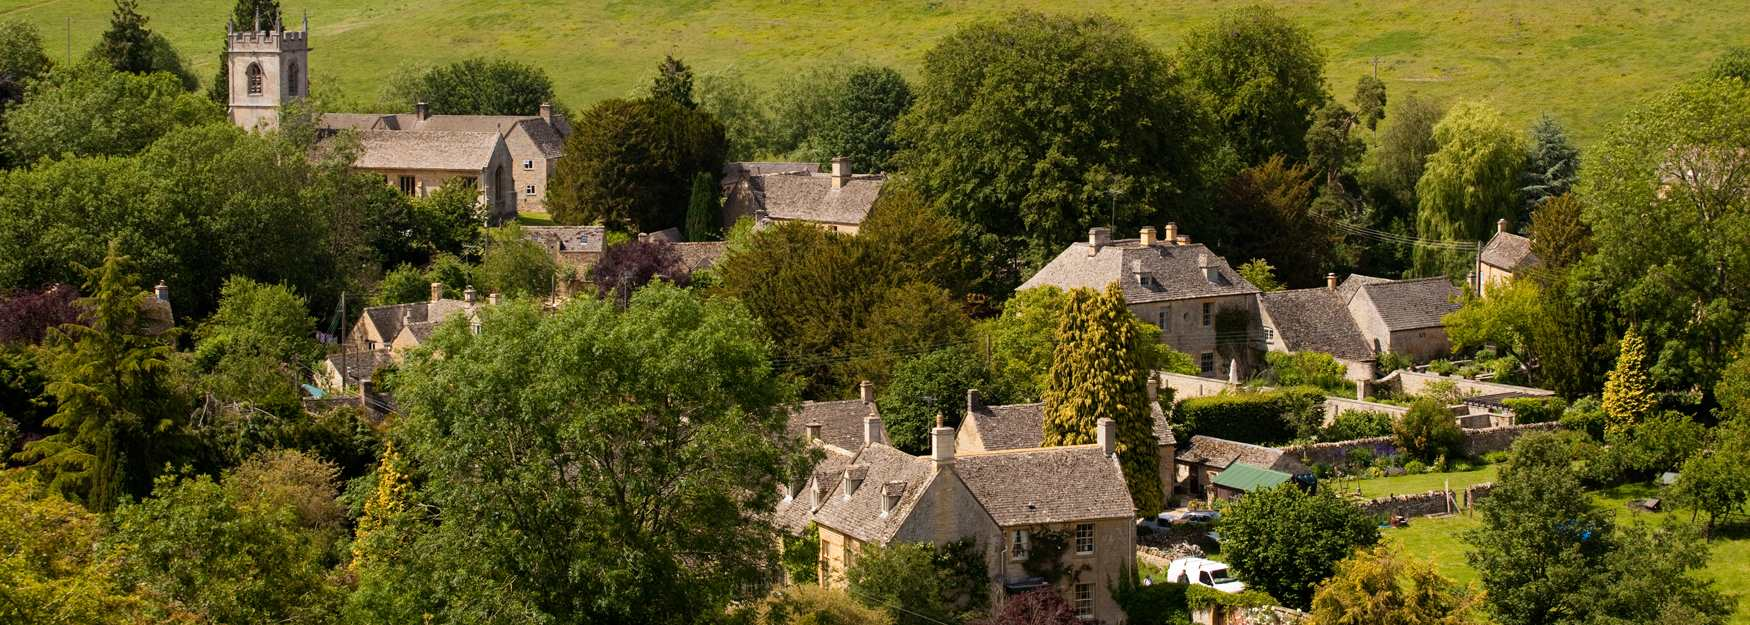 Cotswold Village from Above